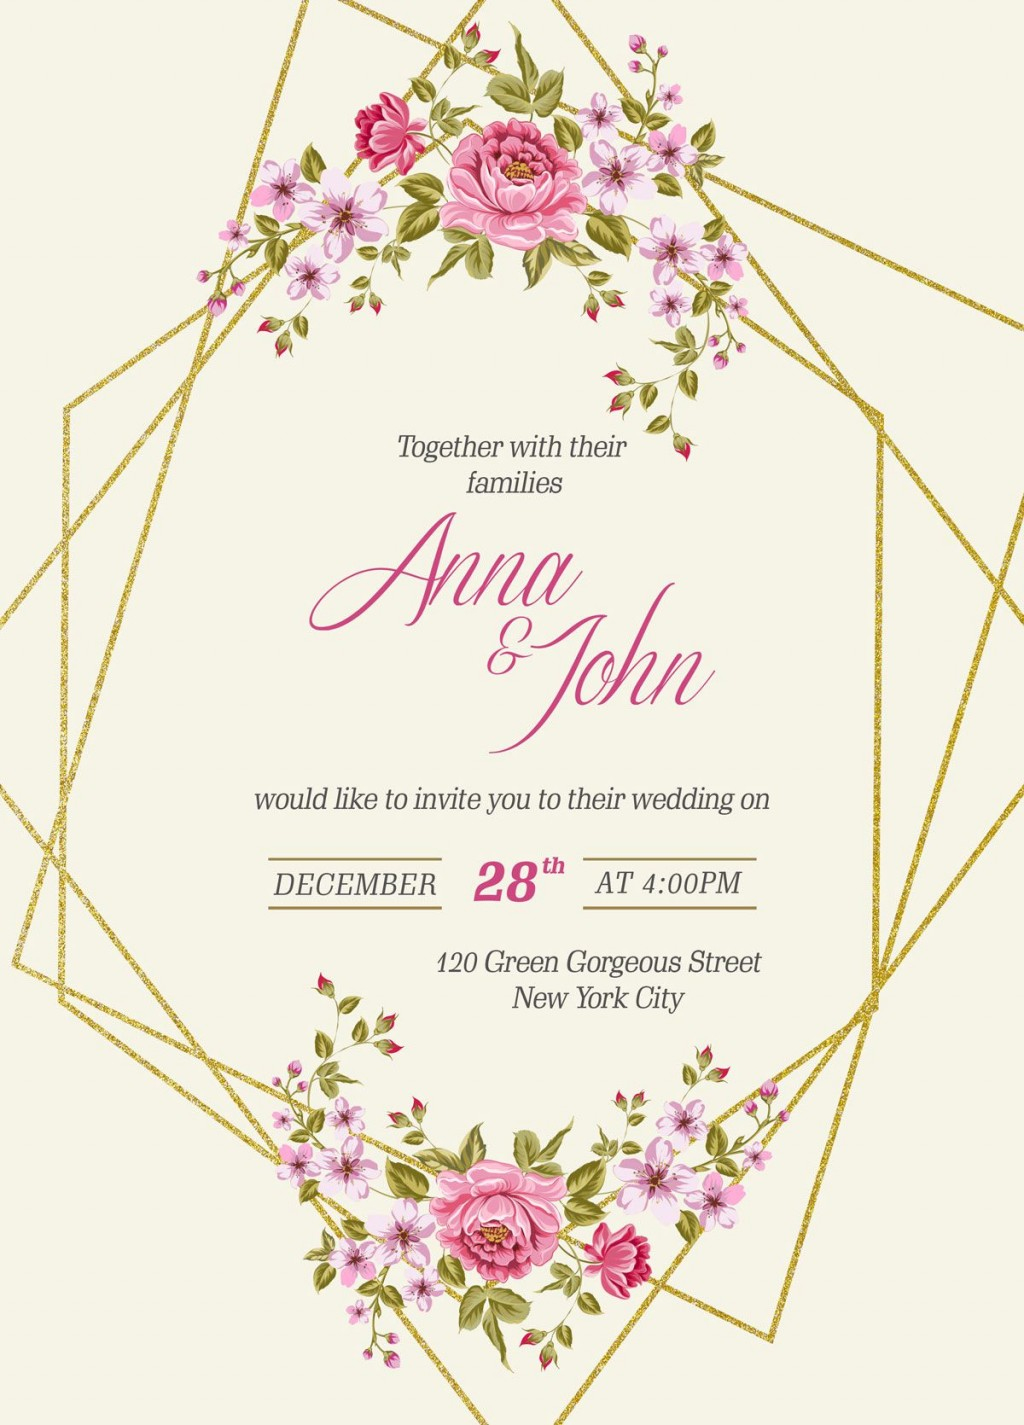 005 Staggering Photoshop Wedding Invitation Template Concept  Templates Hindu Psd Free Download CardLarge